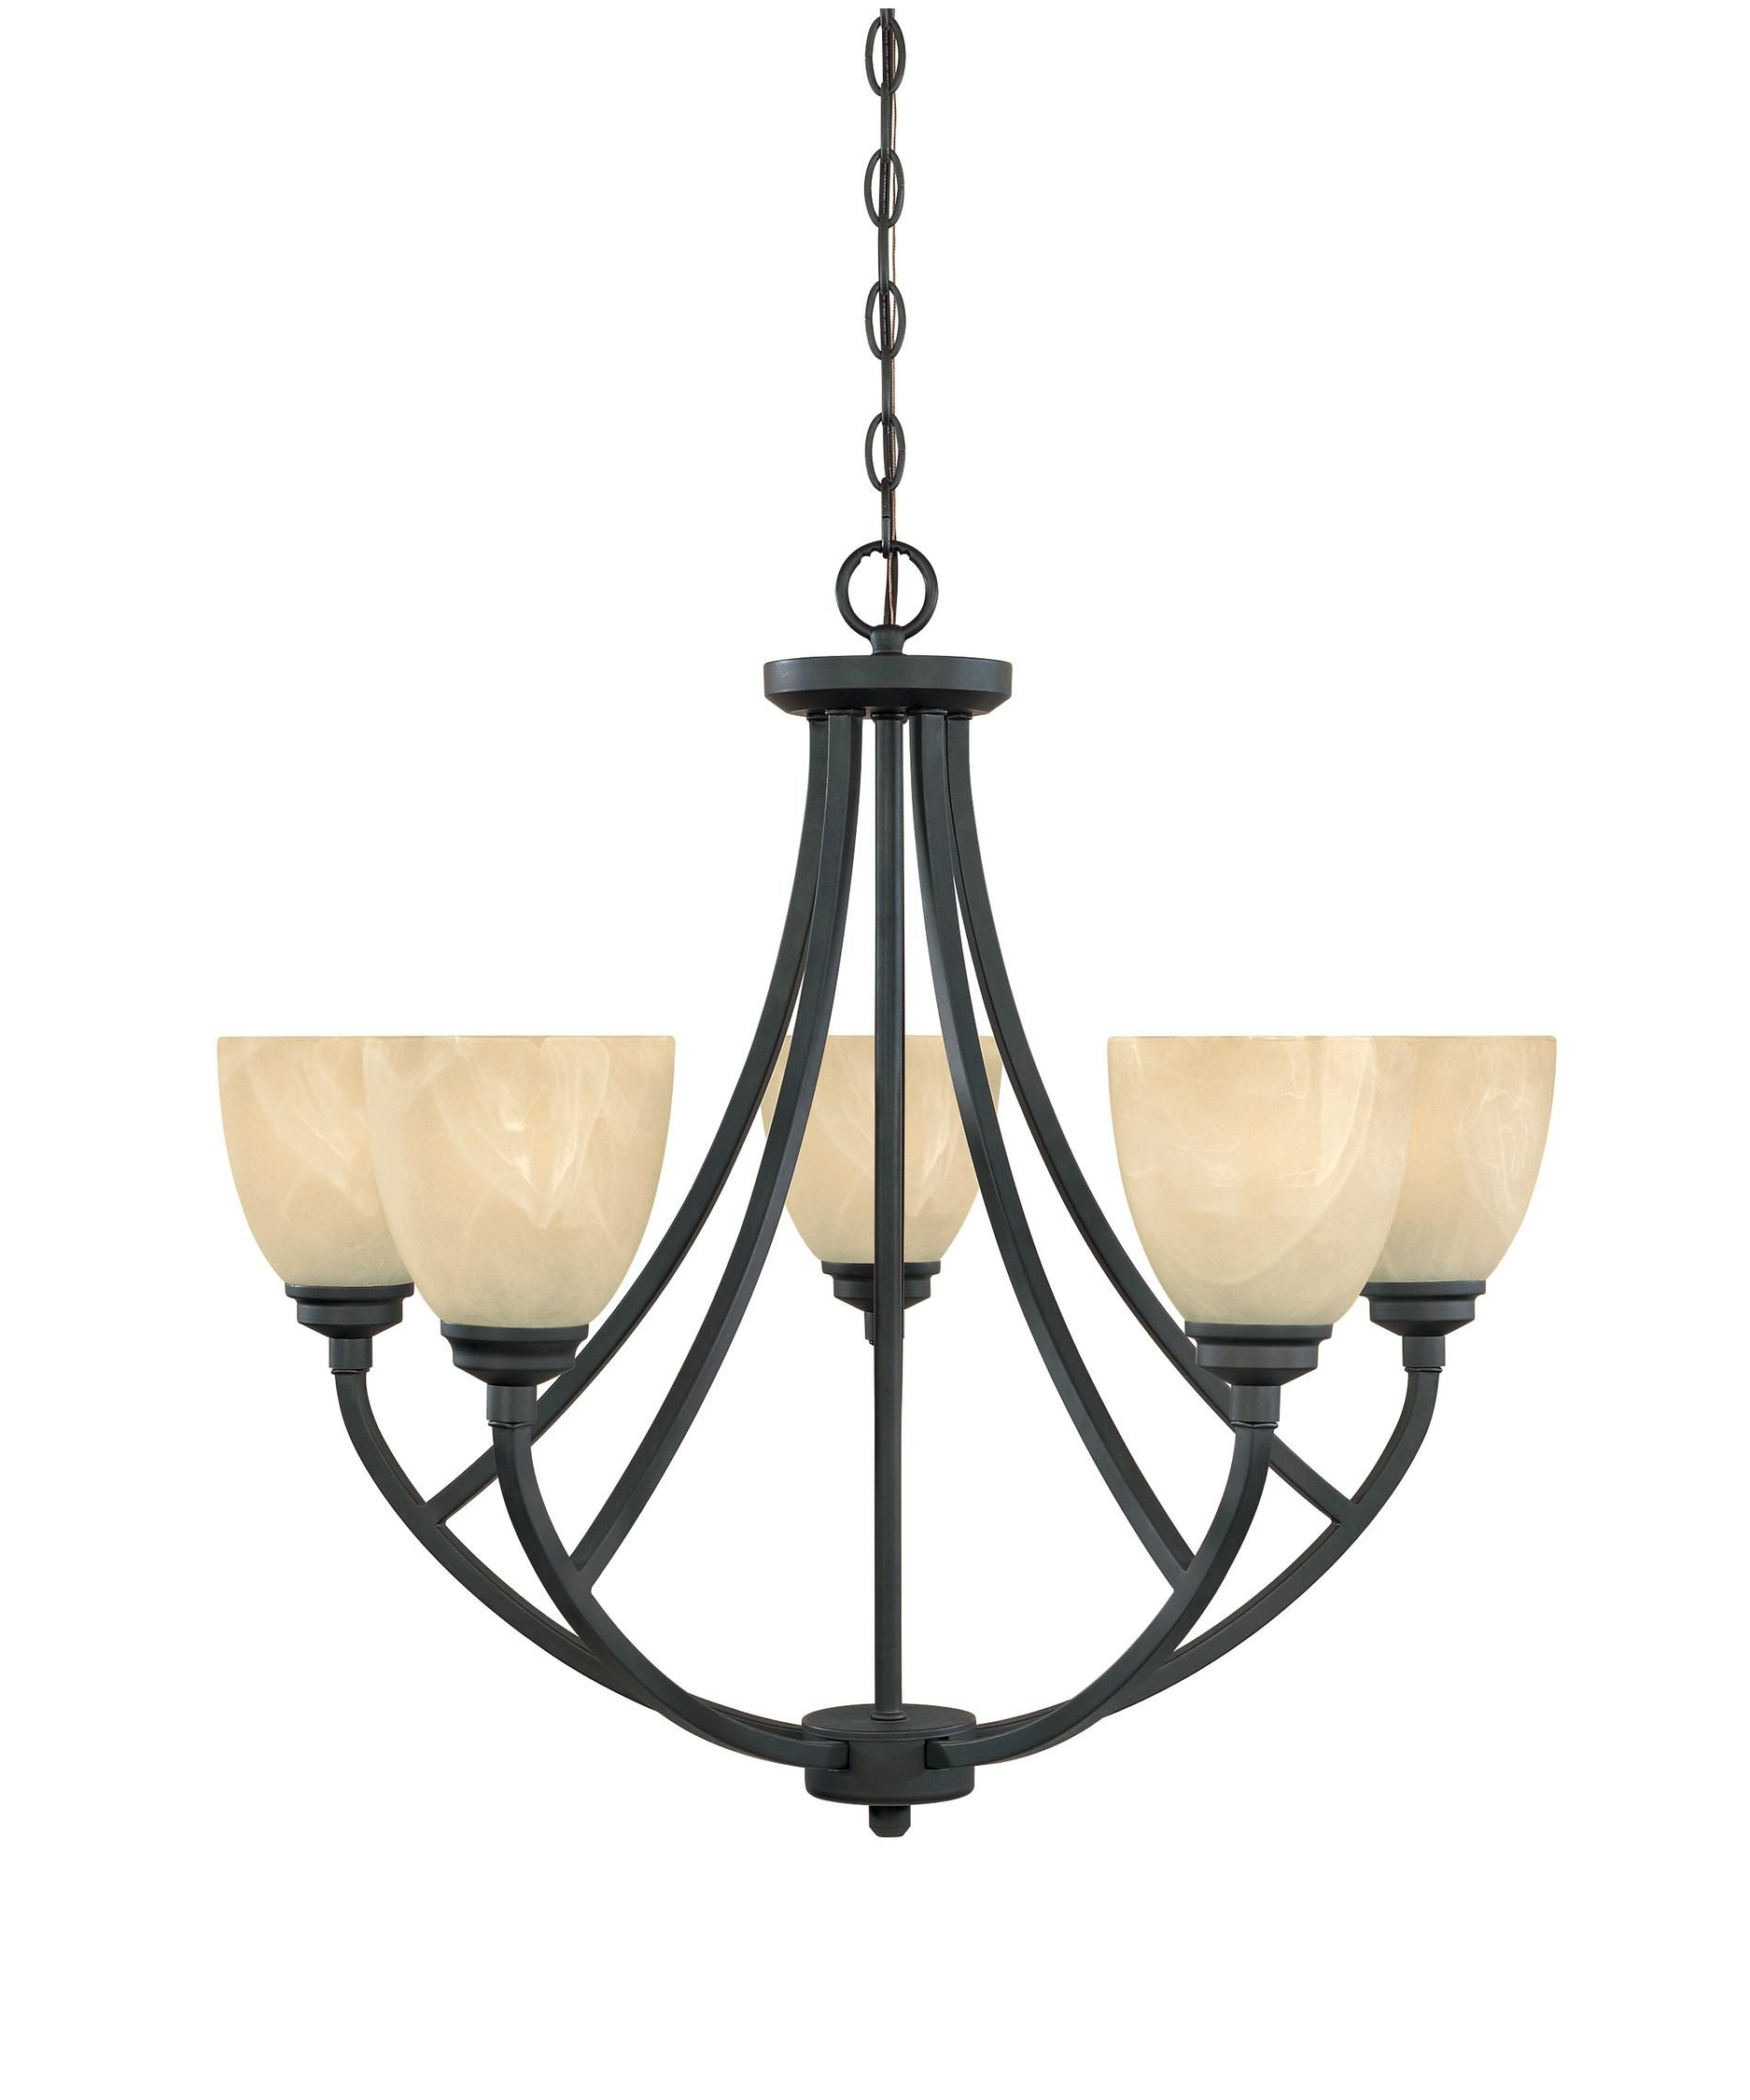 2020 Tackwood 27 Inch 5 Light Chandelierdesigners Fountain Within Suki 5 Light Shaded Chandeliers (View 6 of 25)